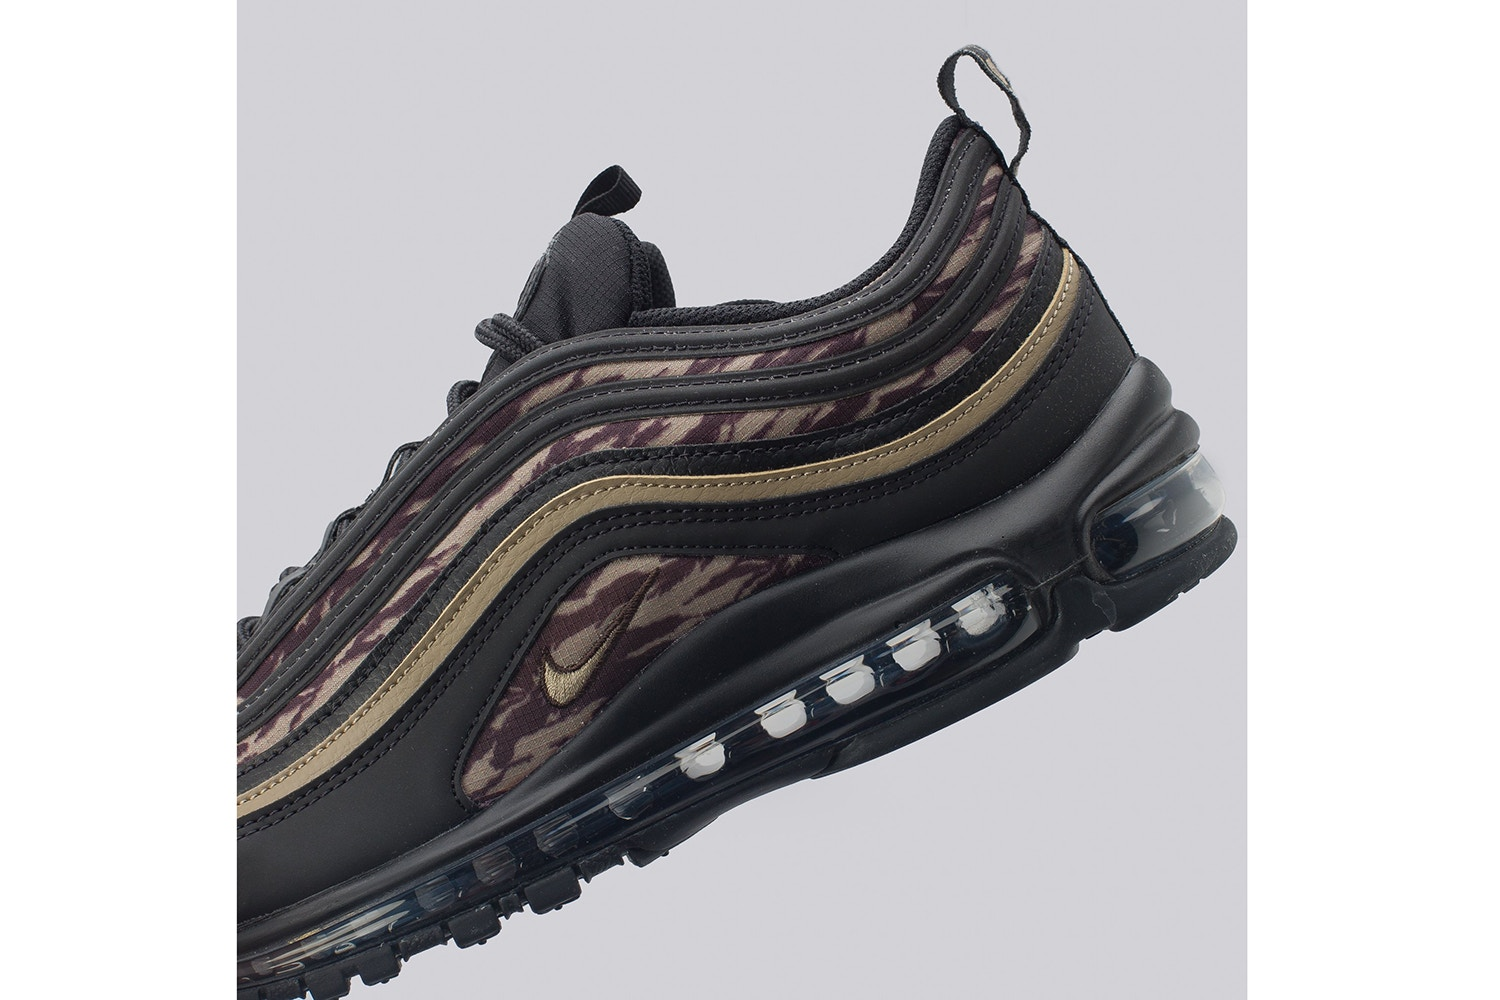 Nike Air Max 97 'Tiger Camo' nike air max 97 tiger camo black brown release 2